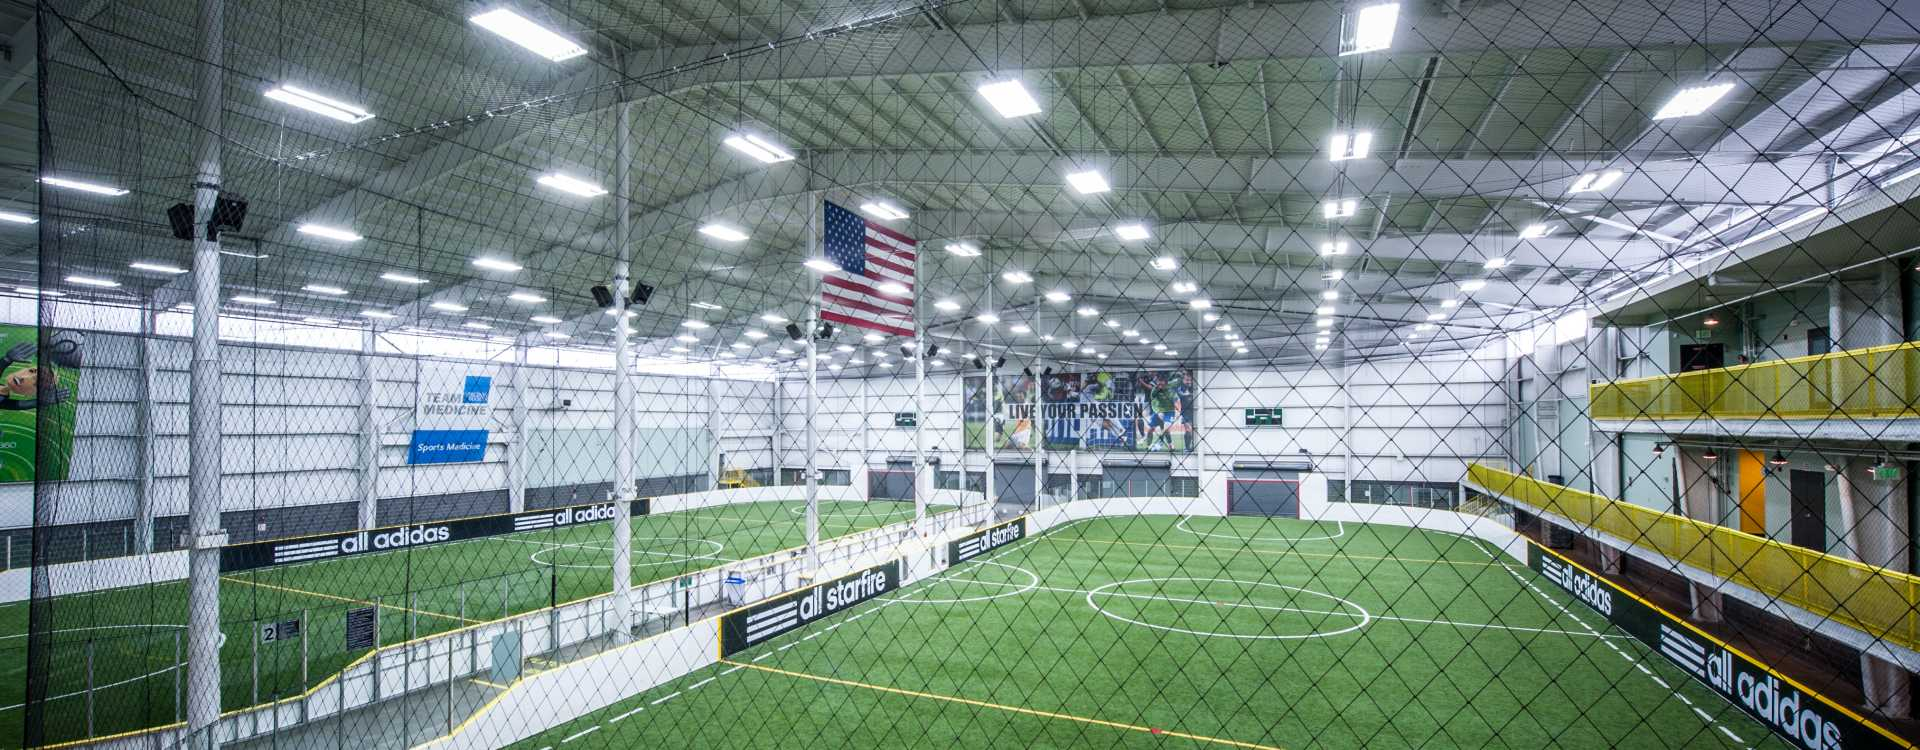 Athletic Center - Inside